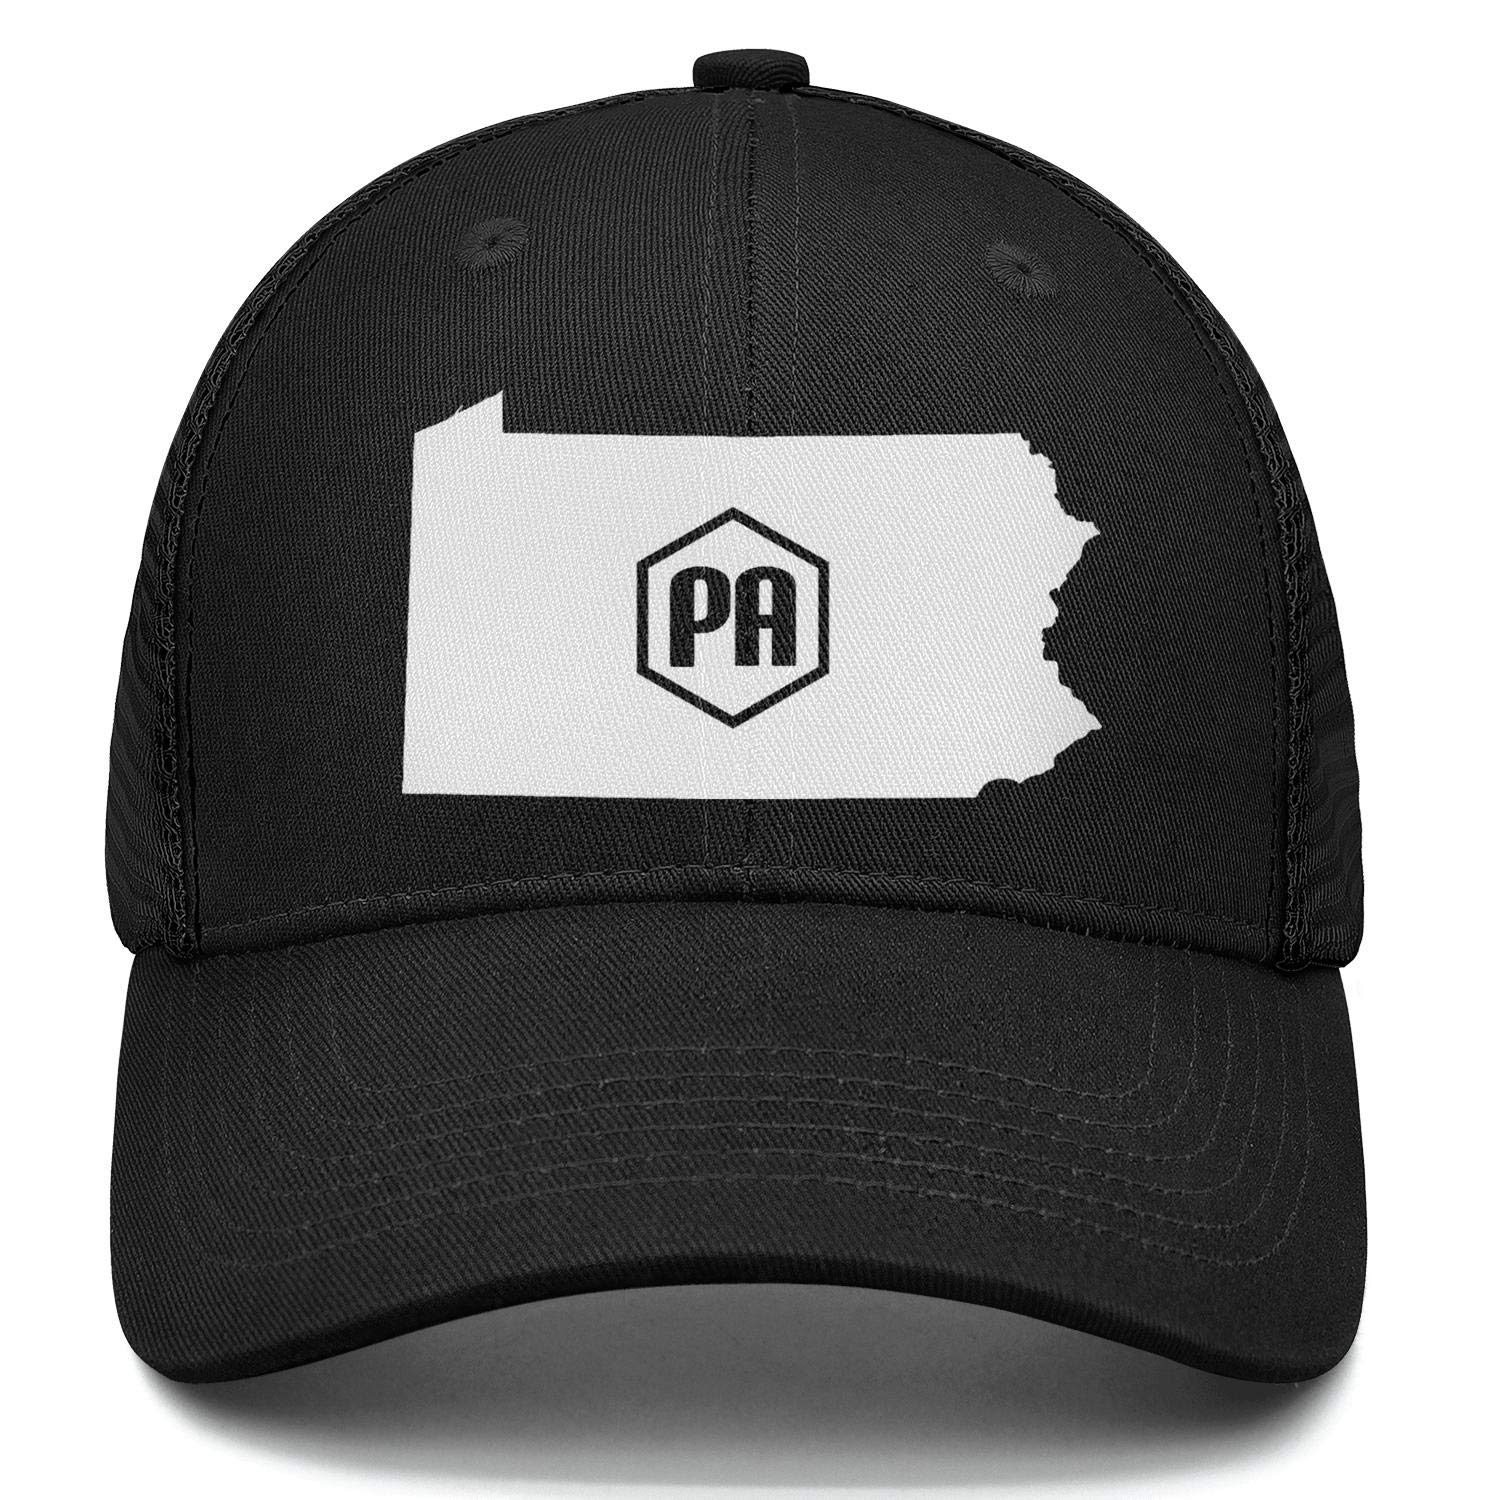 Lets NOT Go to Philly Truck Driver Caps Adjustable Unisex Mesh Cap Duck Tongue Caps Personality Cap